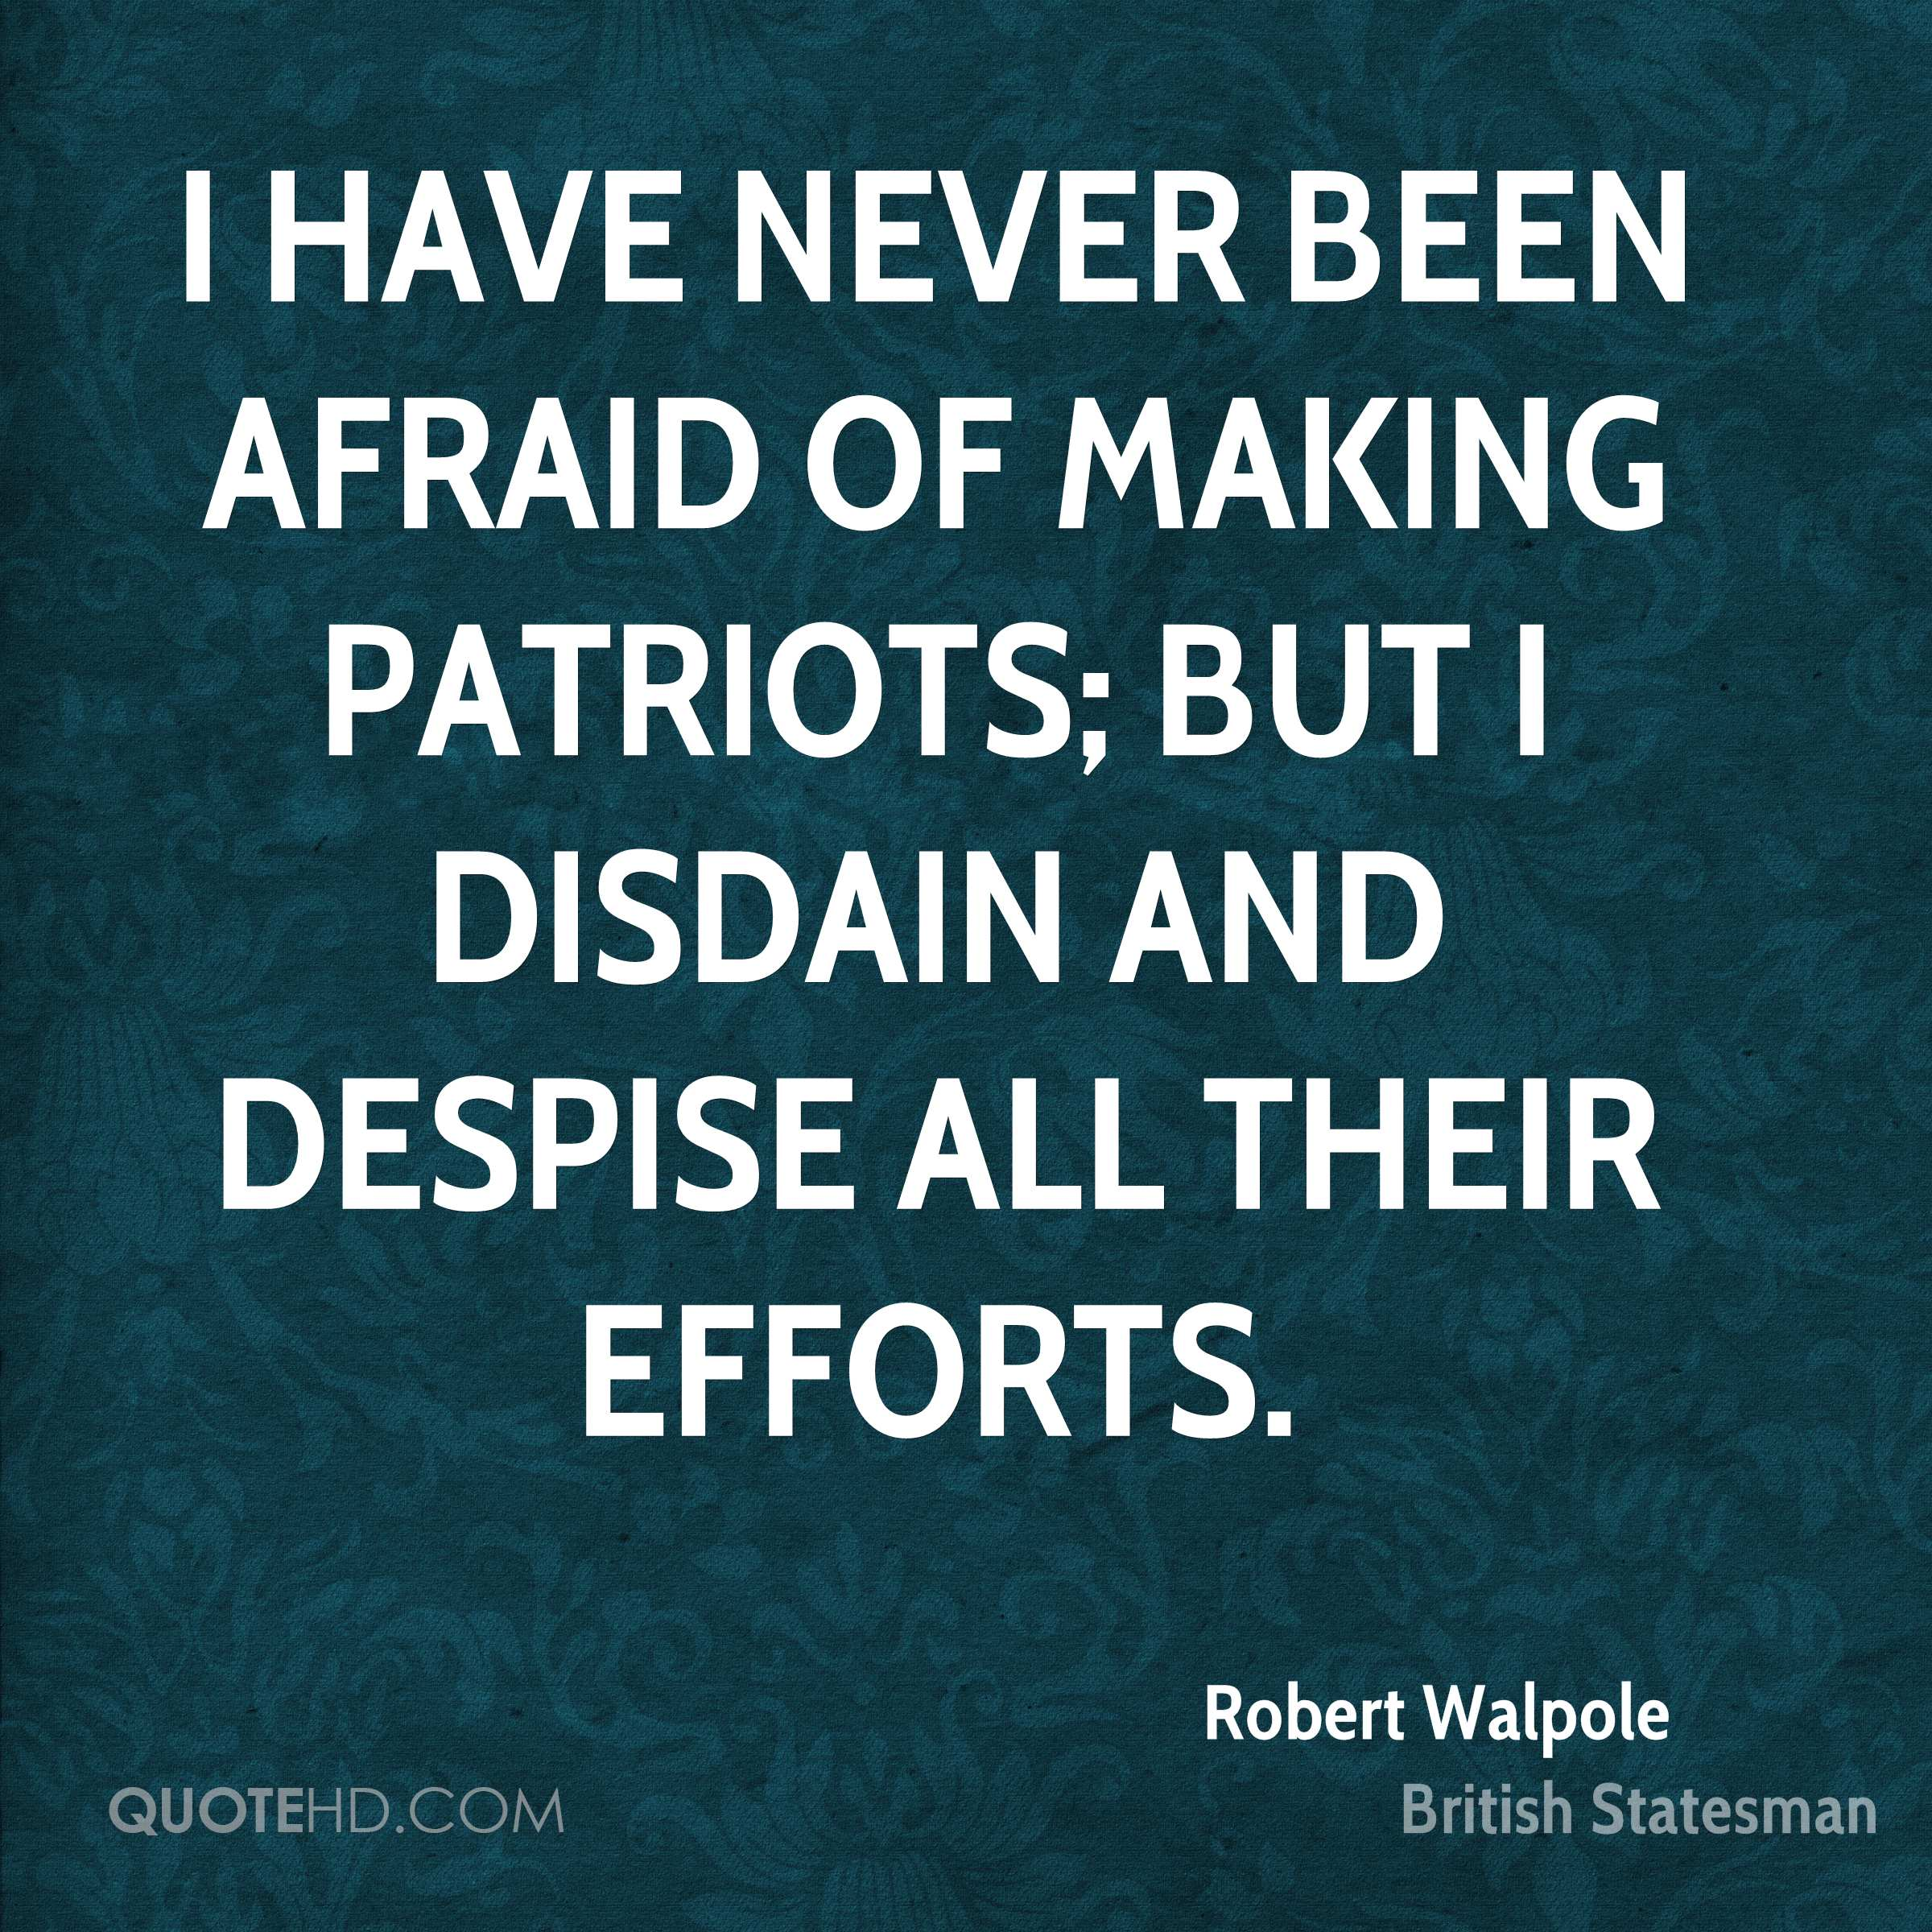 I have never been afraid of making patriots; but I disdain and despise all their efforts.